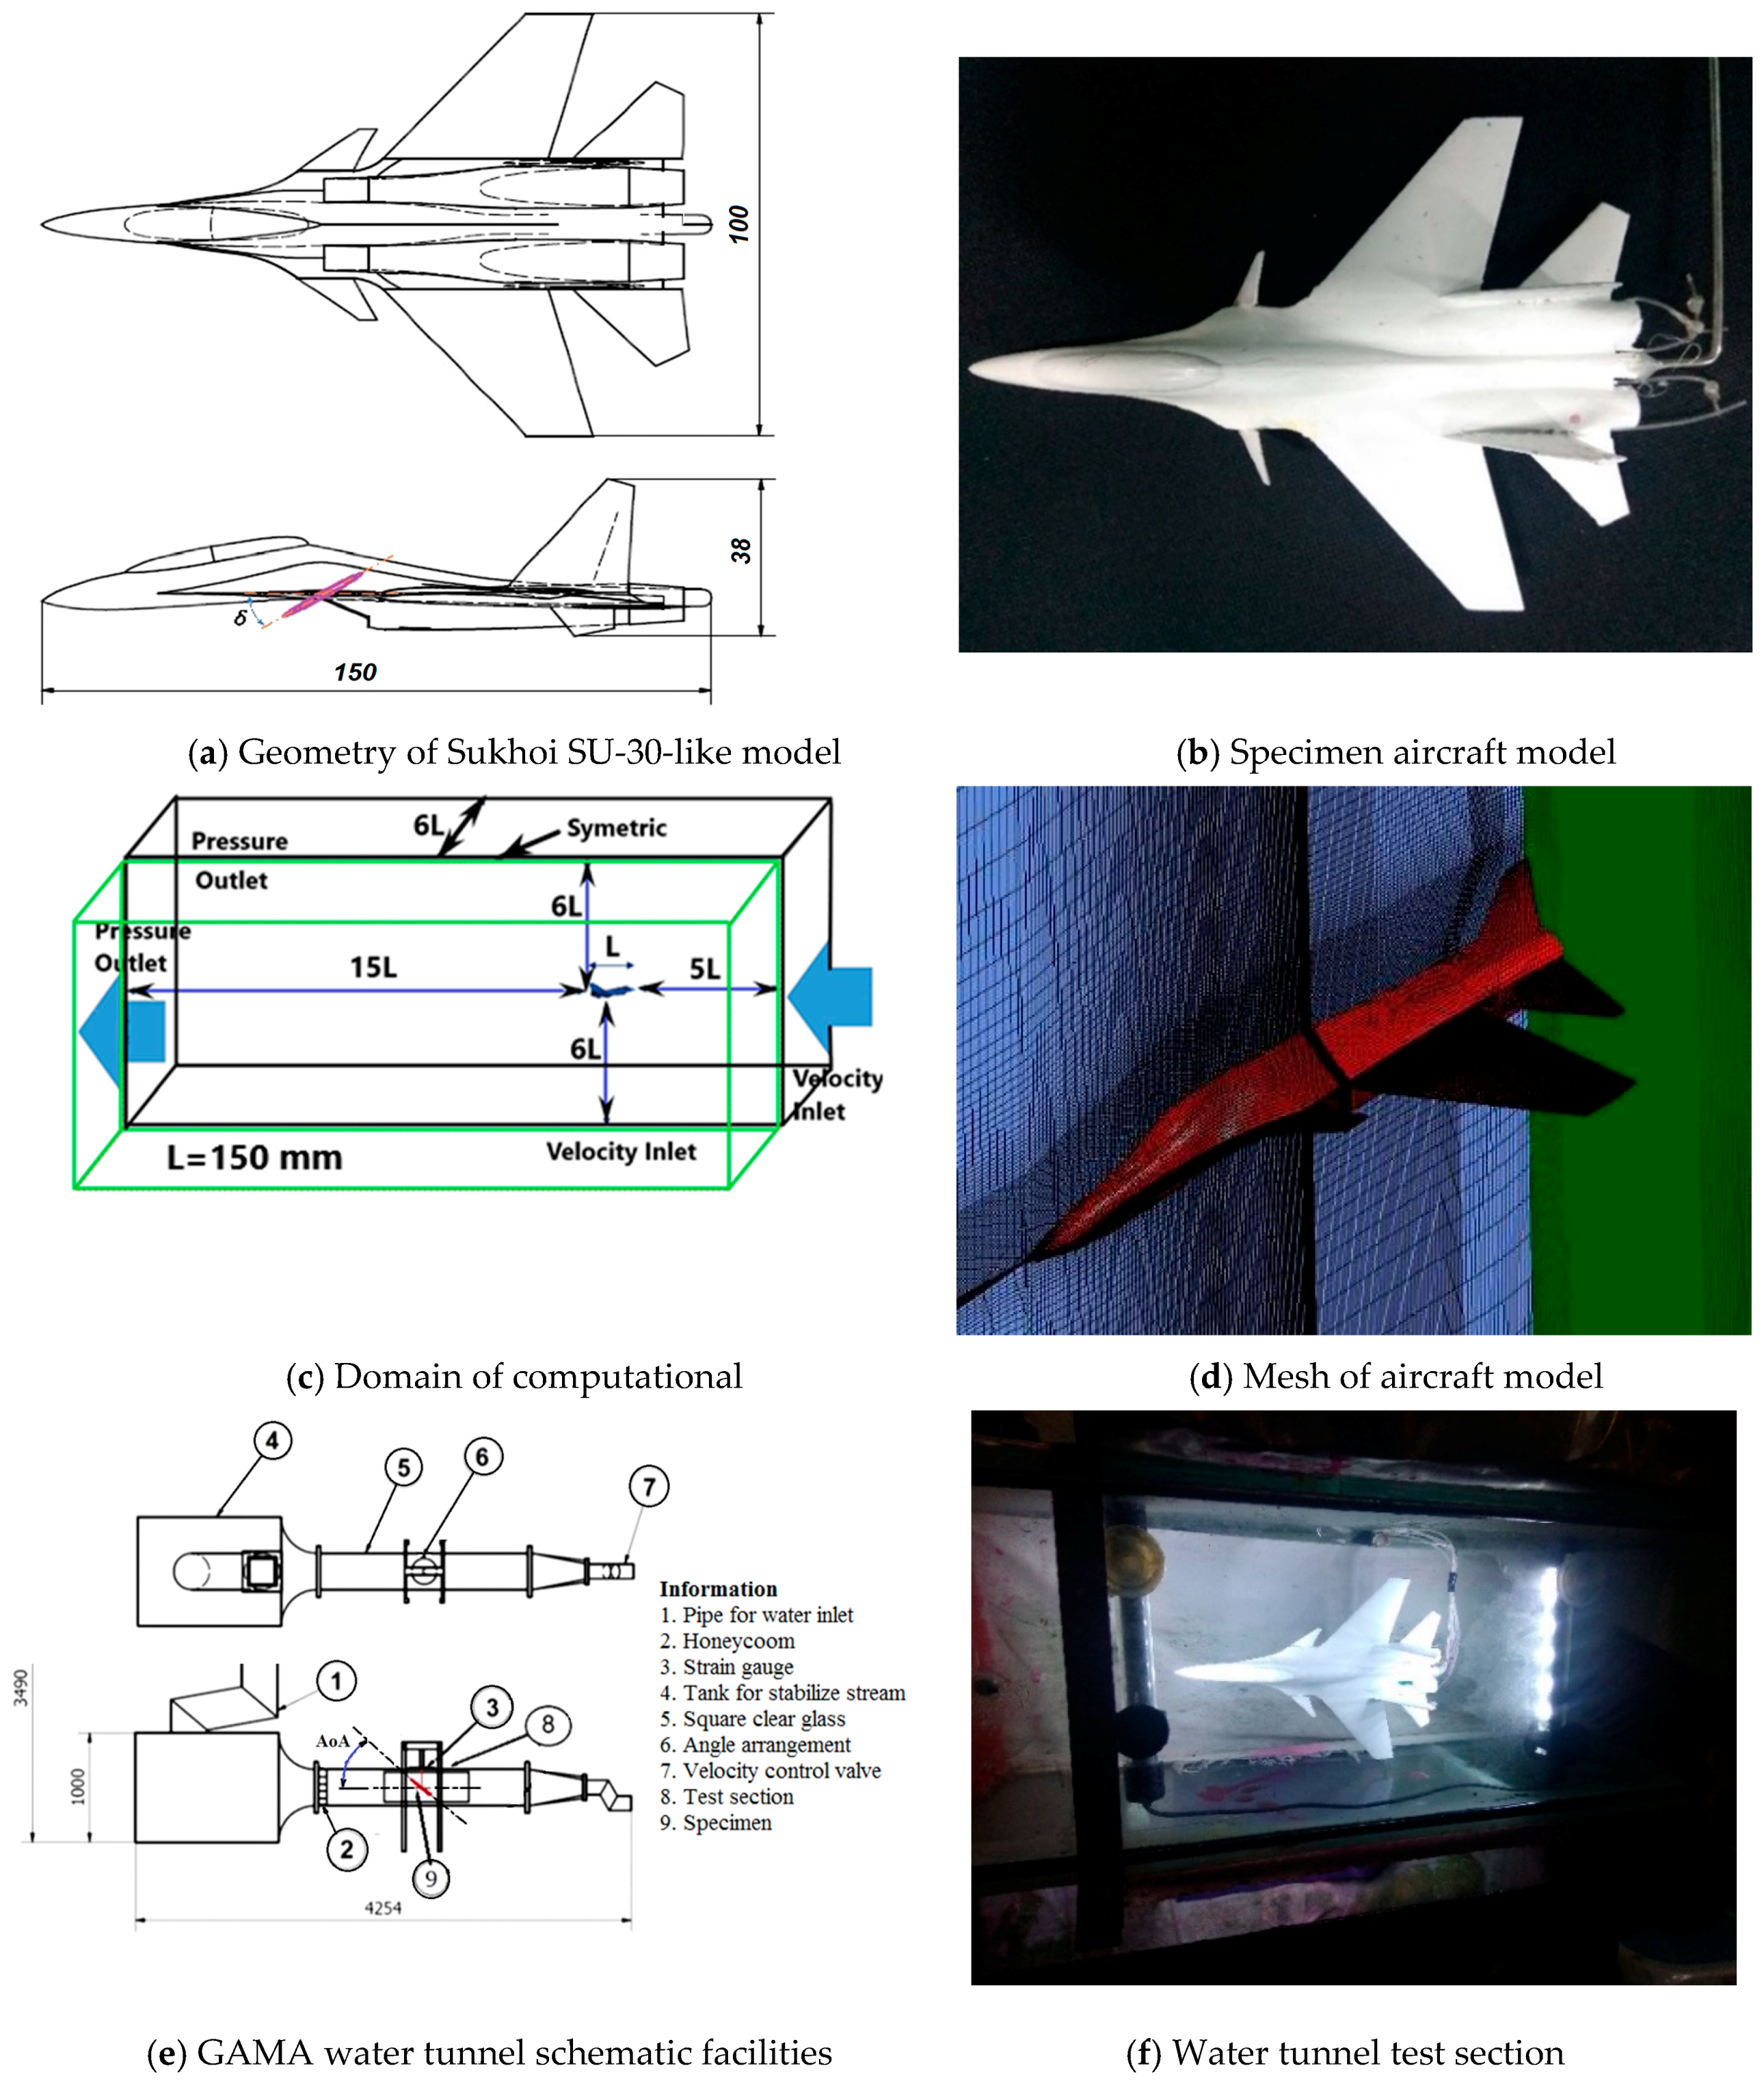 Aerospace Free Full Text Vortex Dynamics Study Of The Canard Deflection Angles Influence On The Sukhoi Su 30 Like Model To Improve Stall Delays At High Aoa Html